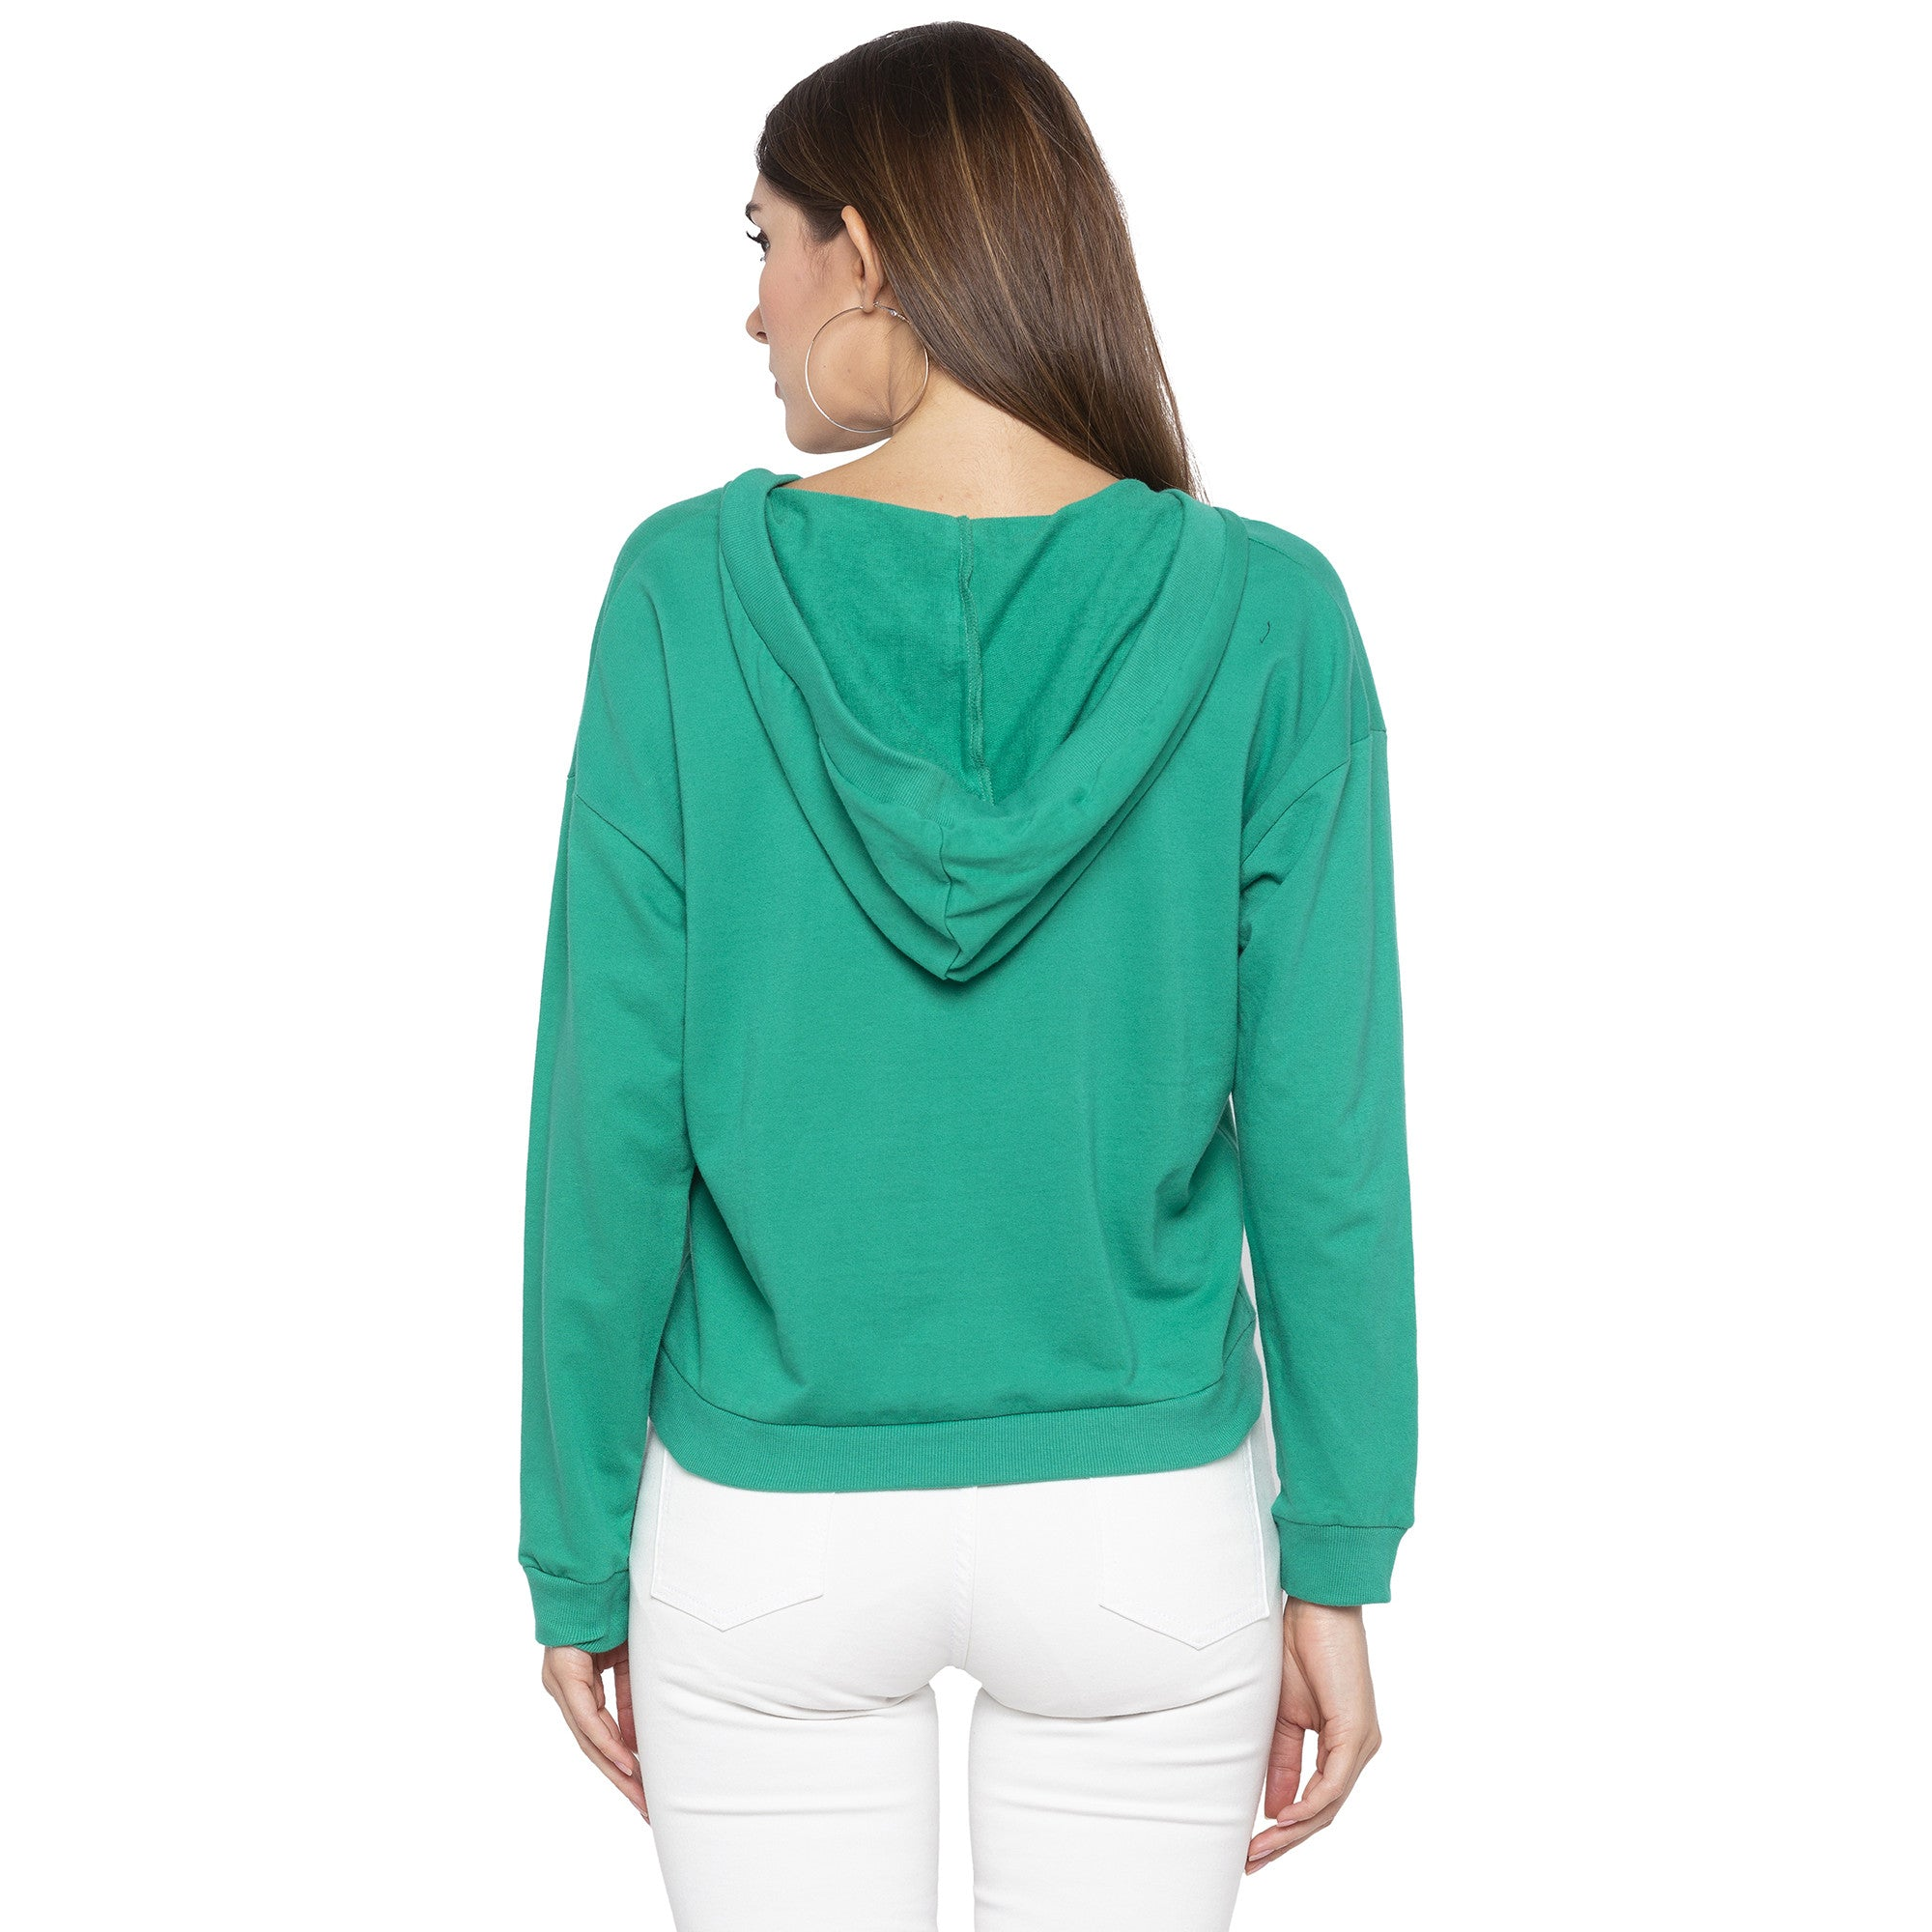 Casual Green Color Solid Sweatshirt-3